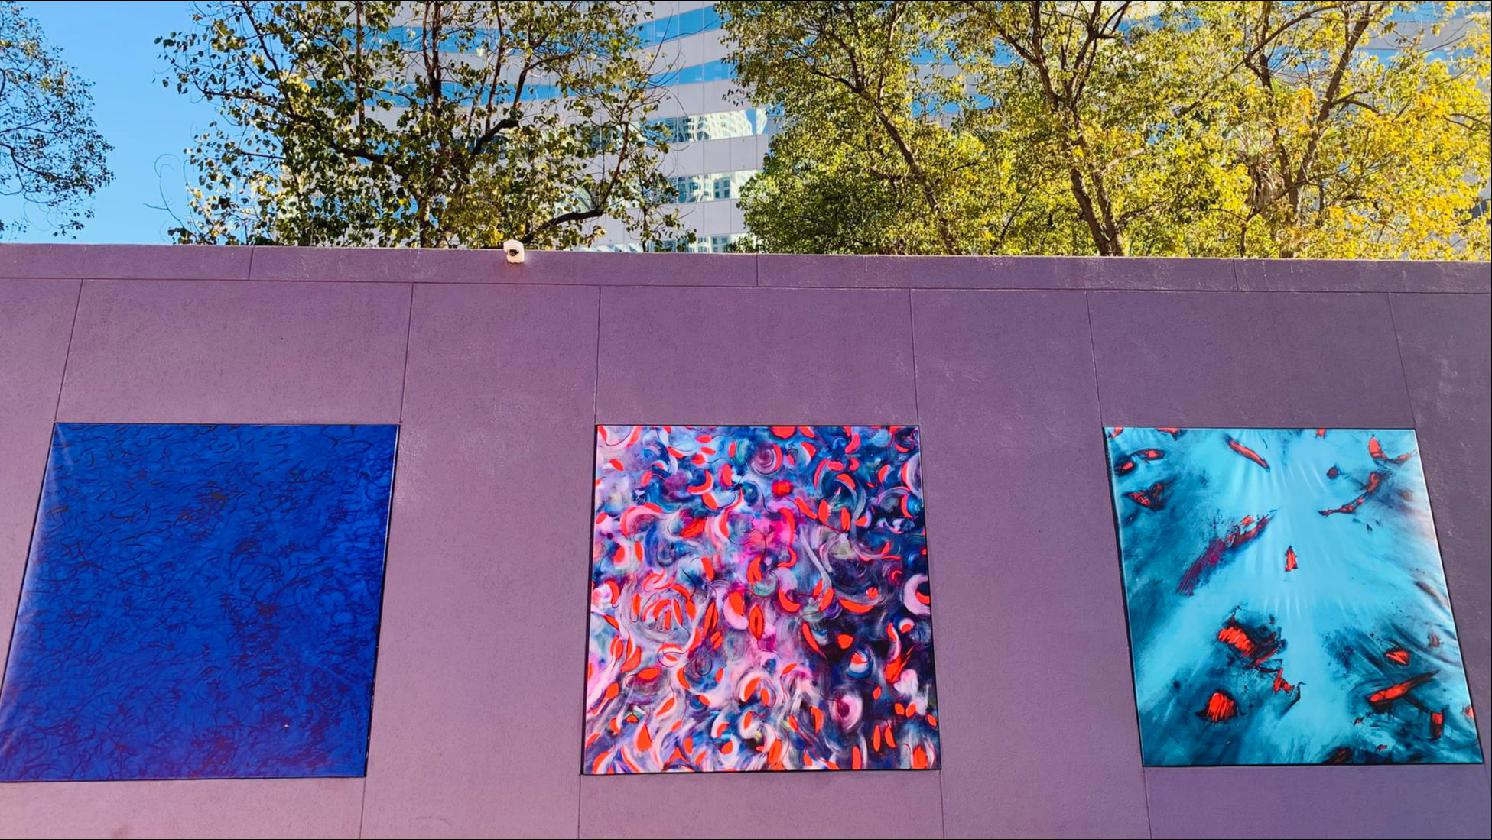 CONTEMPORARY ART EXHIBITION Art Squared Gallery featuring the artwork of Laurel Holloman at Pershing Square, DTLA